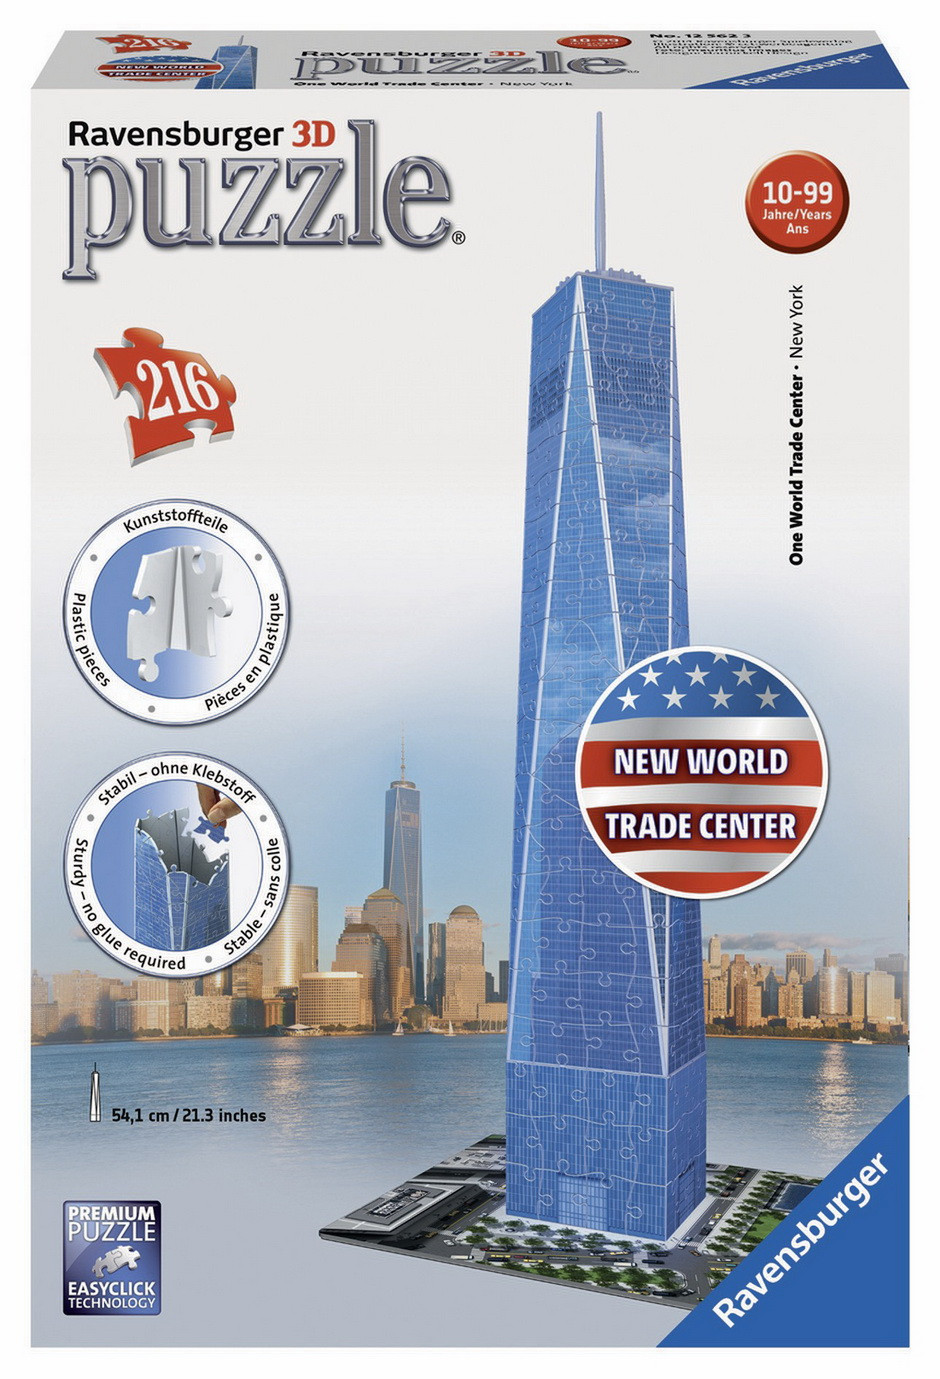 Ravensburger - One World Trade Centre 3D Puzzle 216pc